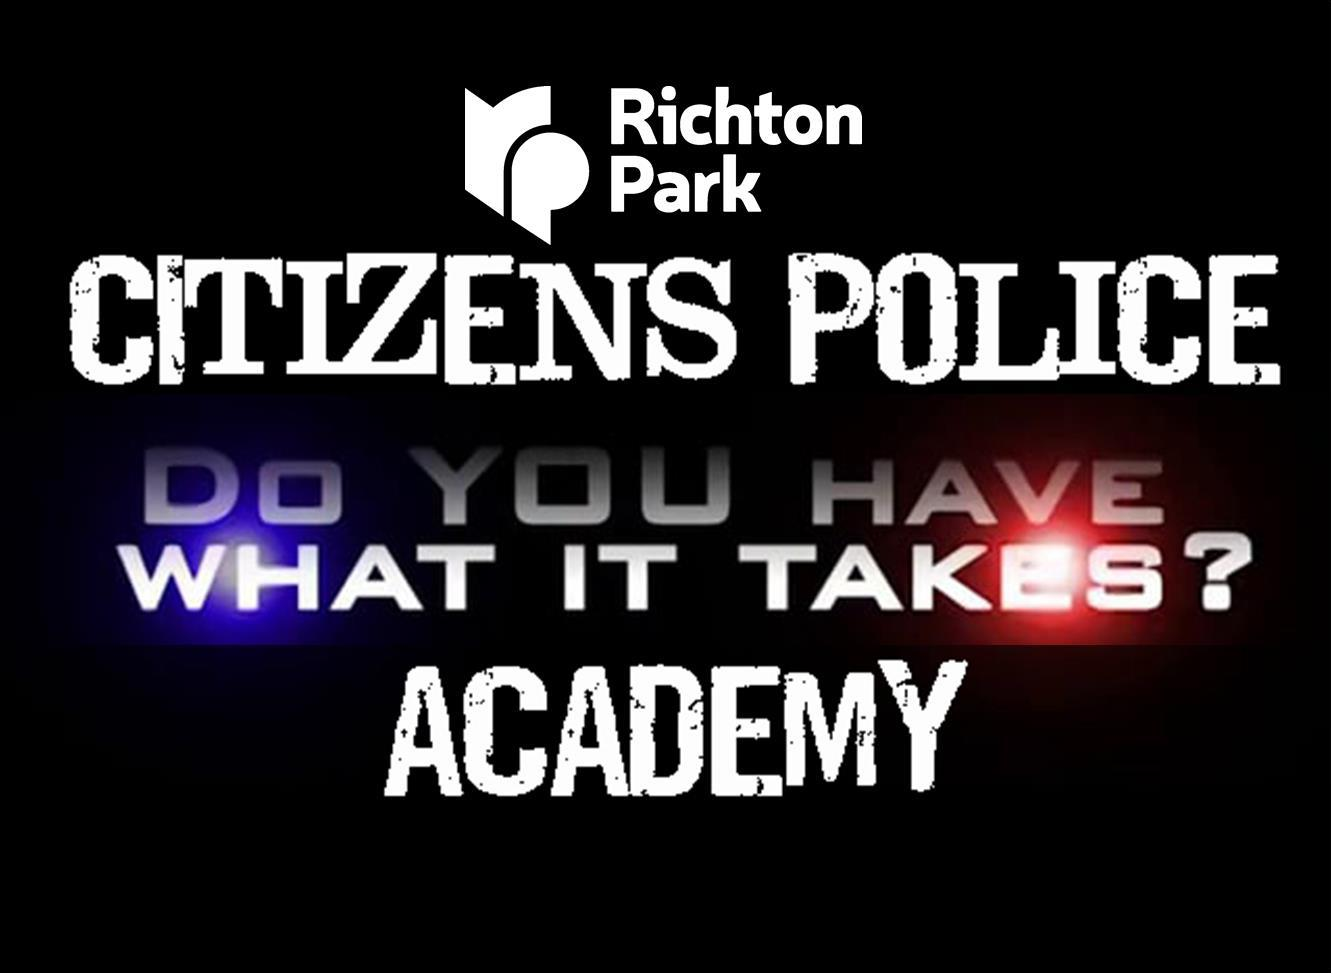 Citizen_Police_Academy - Do You Have What It Takes